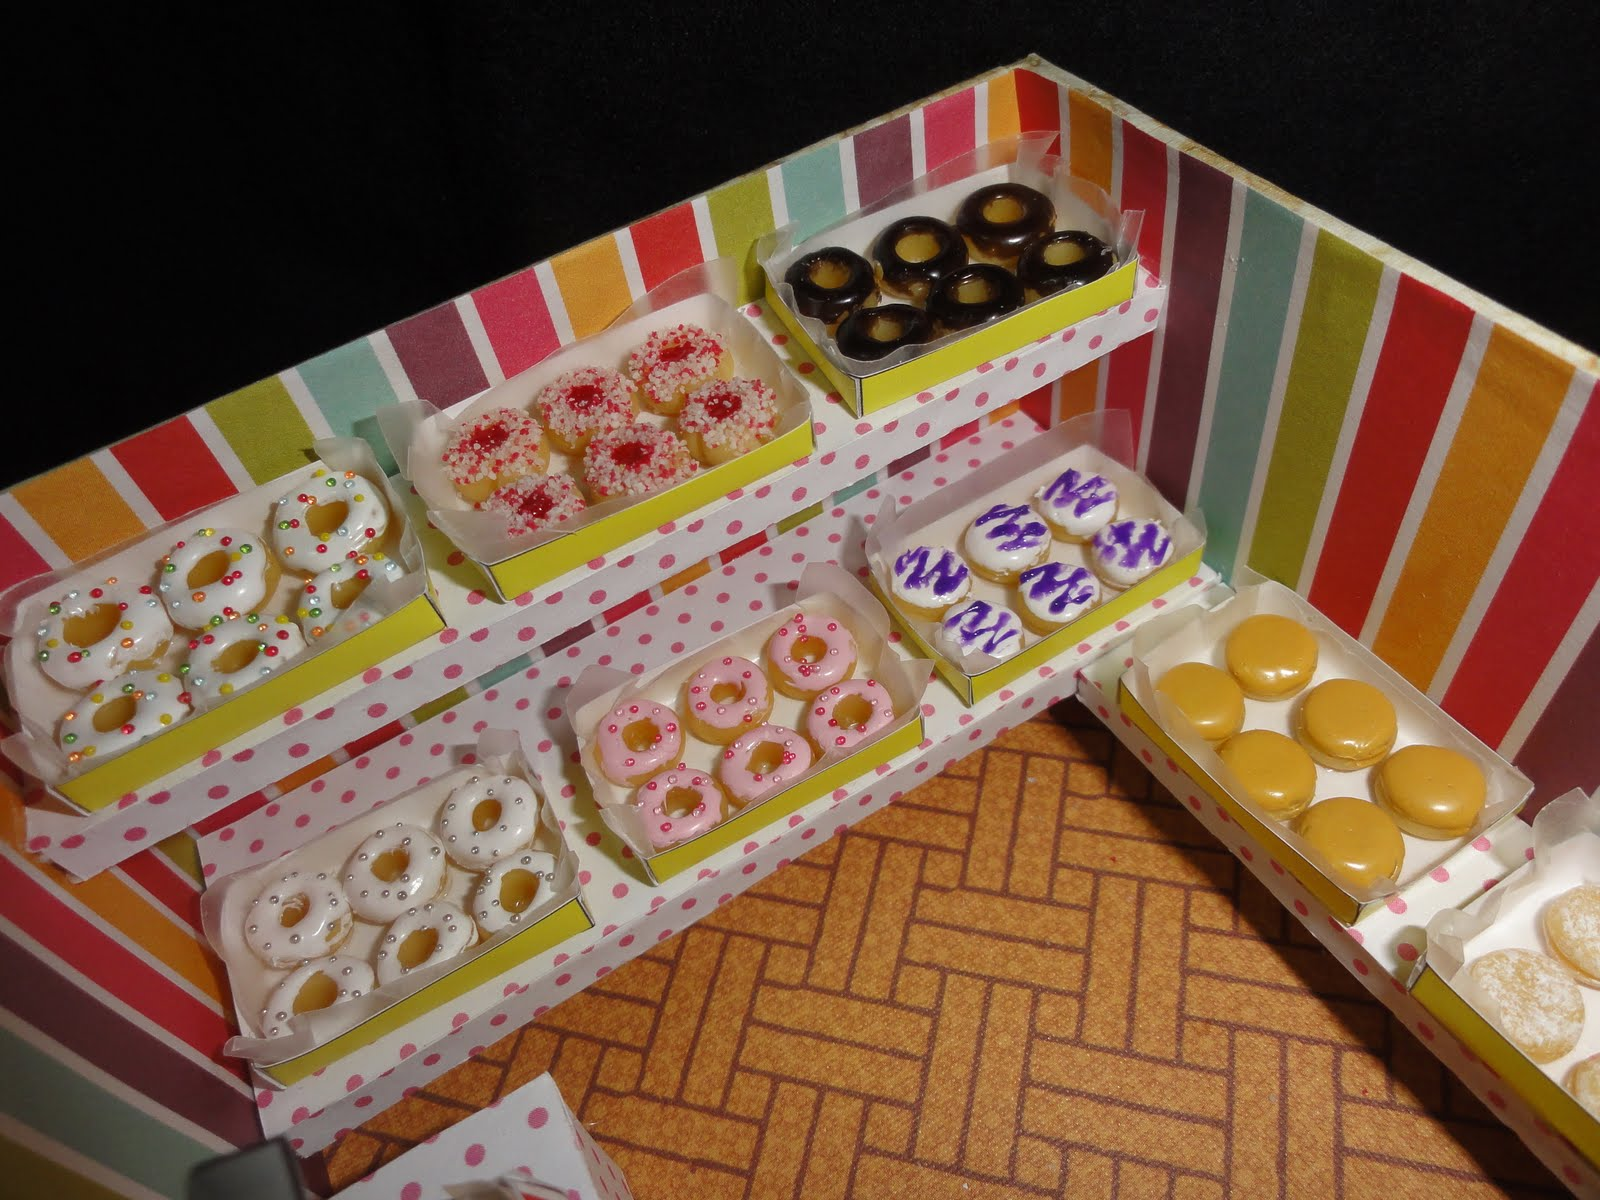 Gracie's blog: Donut Shop! (clay miniature)